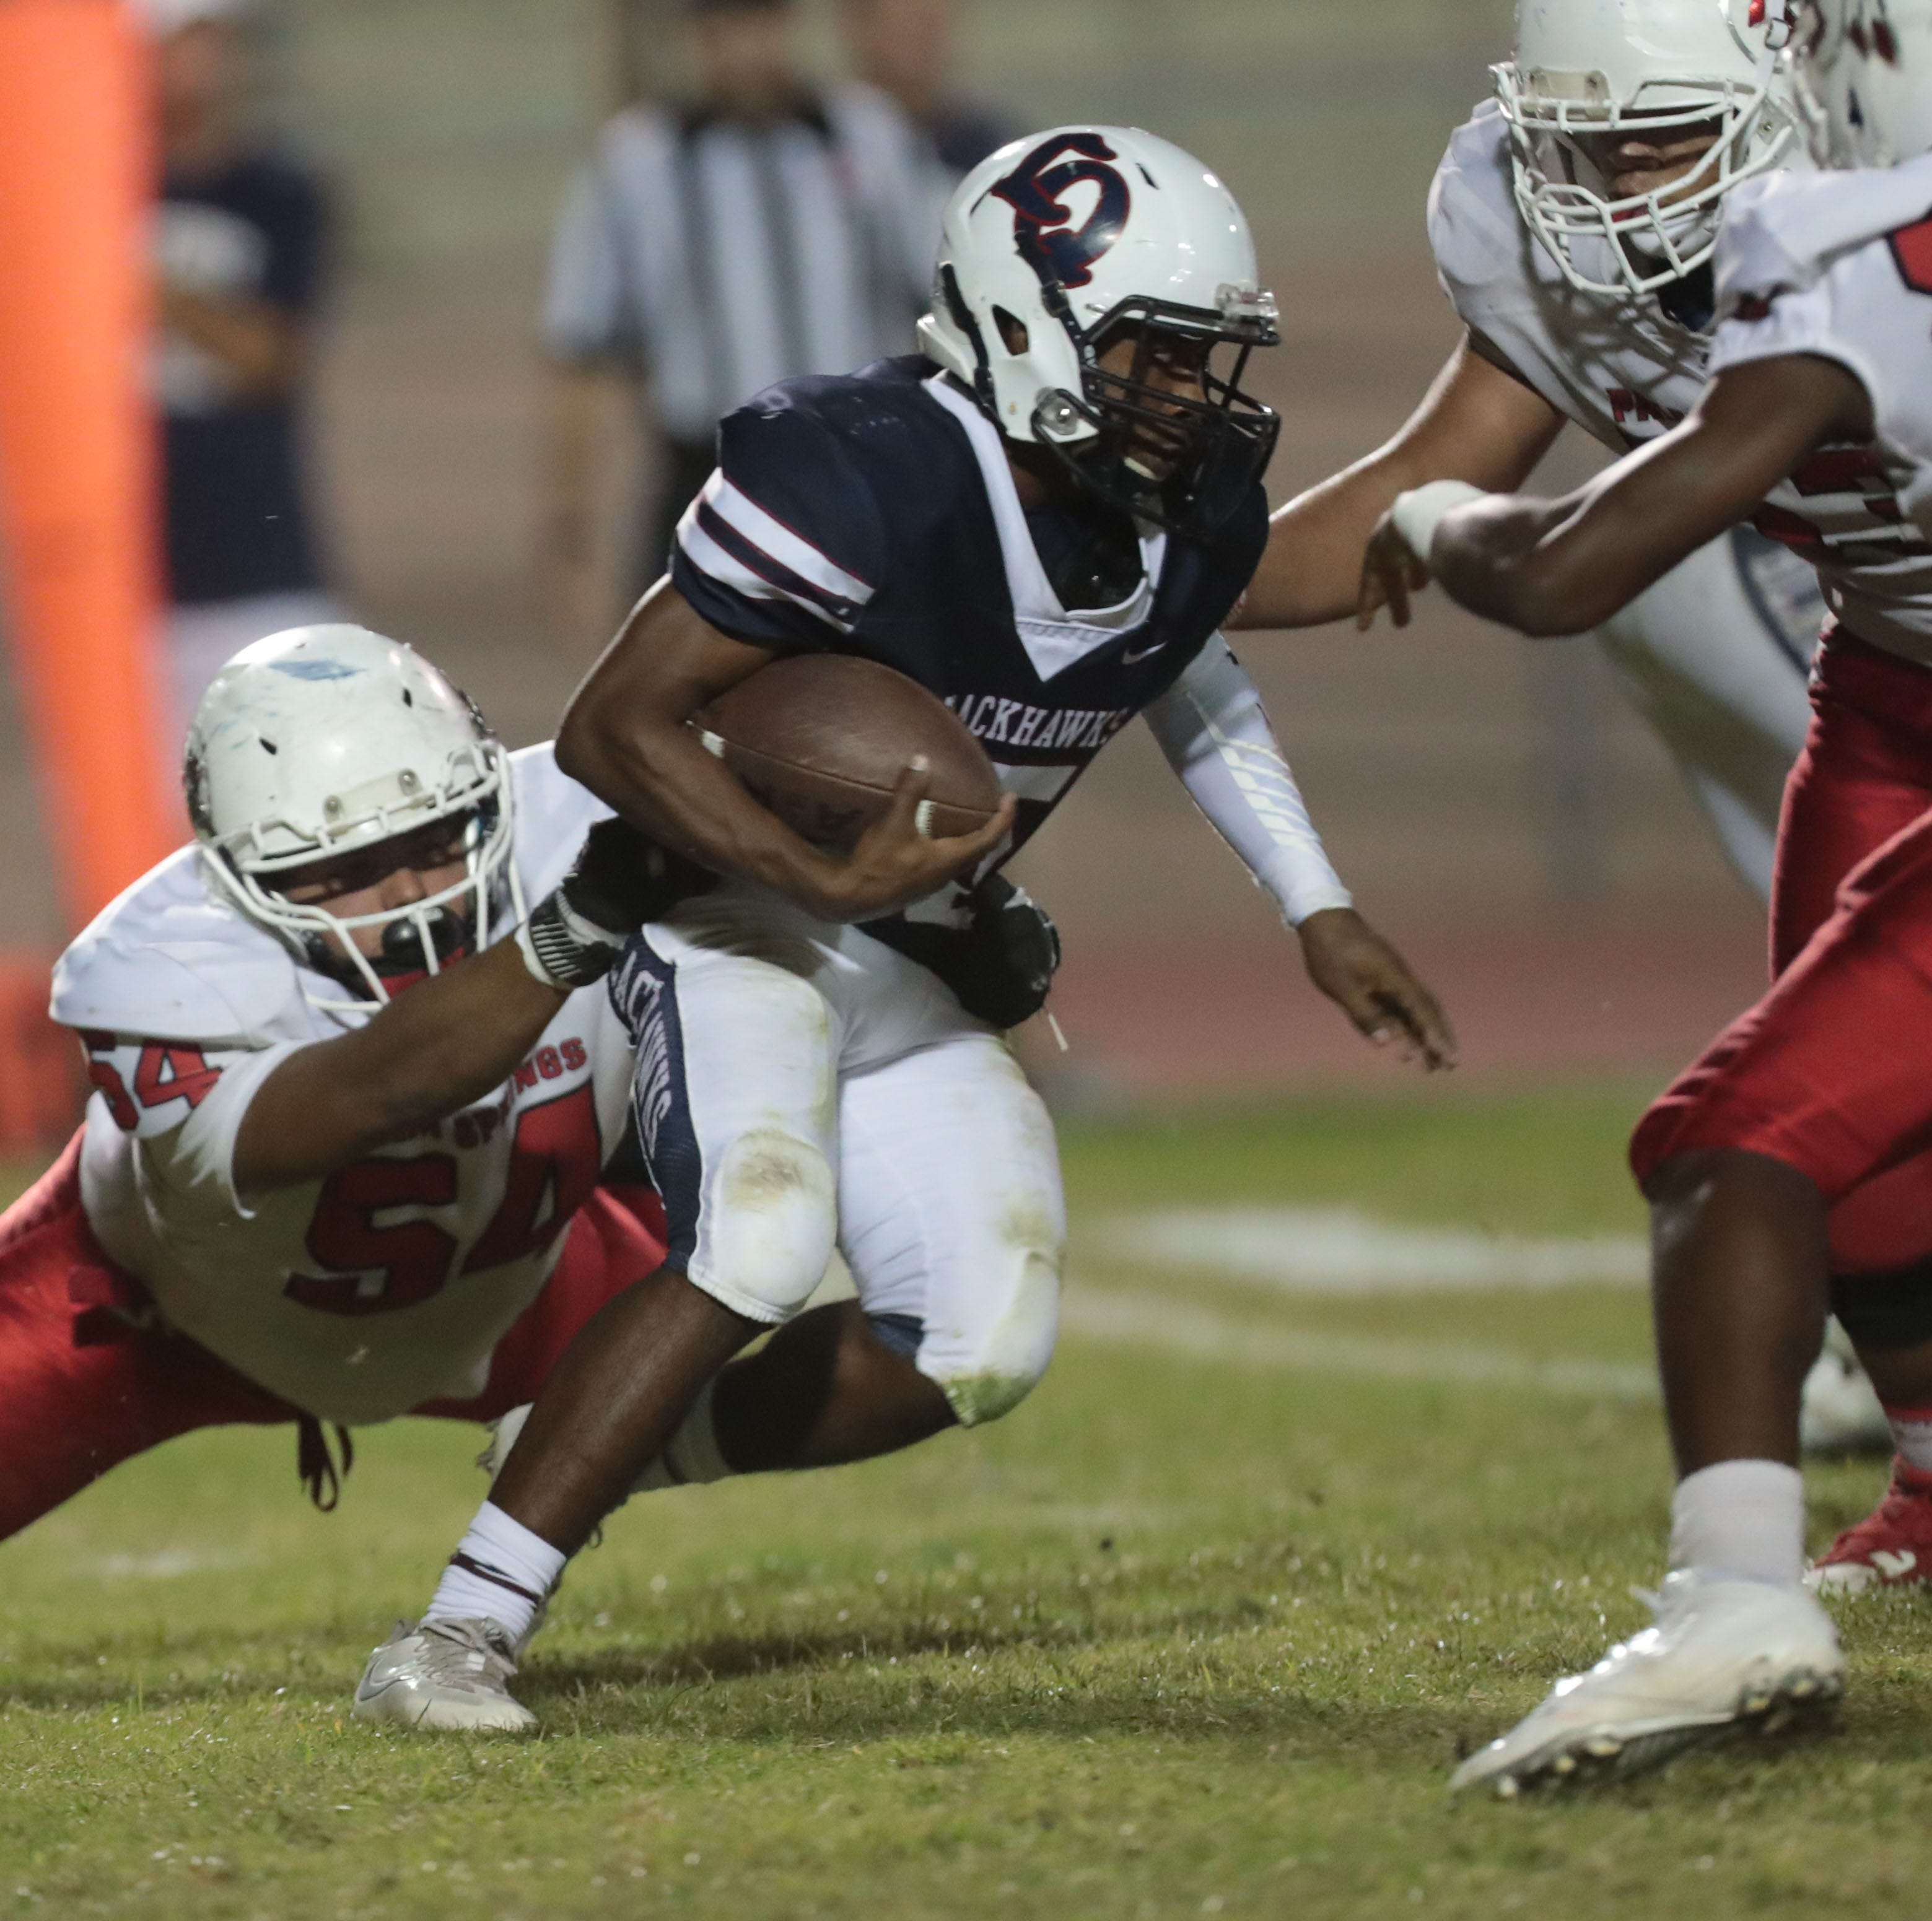 La Quinta grinds out win against Palm Springs team likely to see their playoff streak end